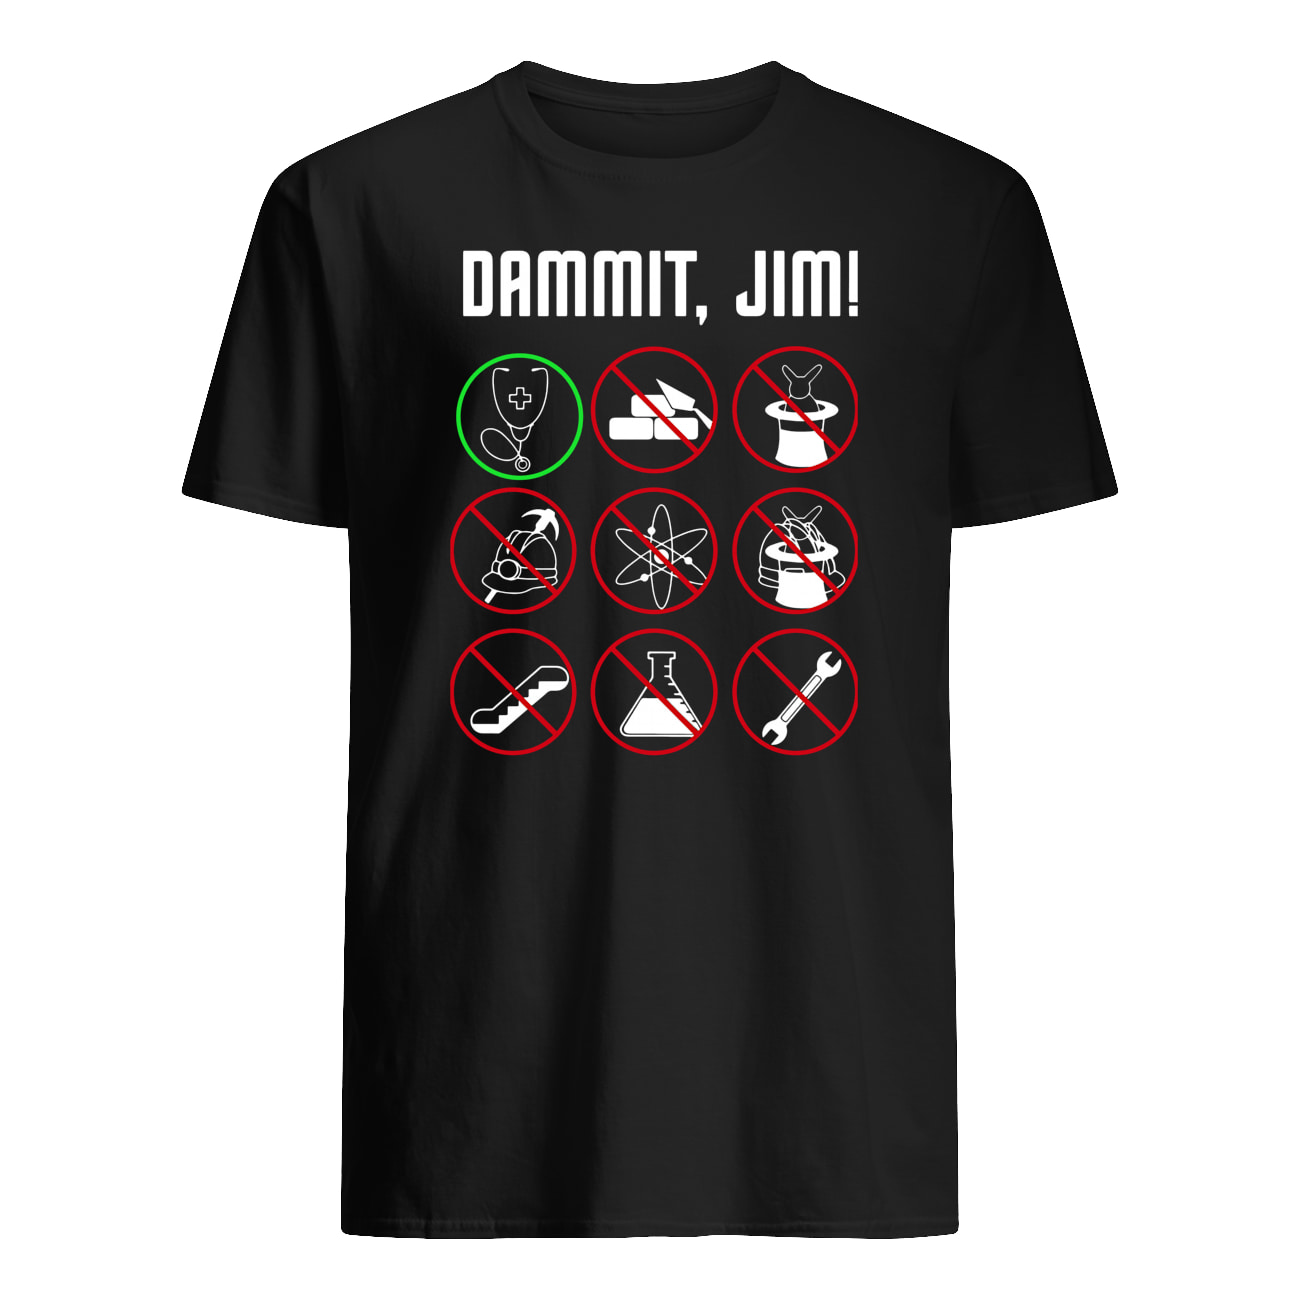 Star trek movie dammit jim mens shirt